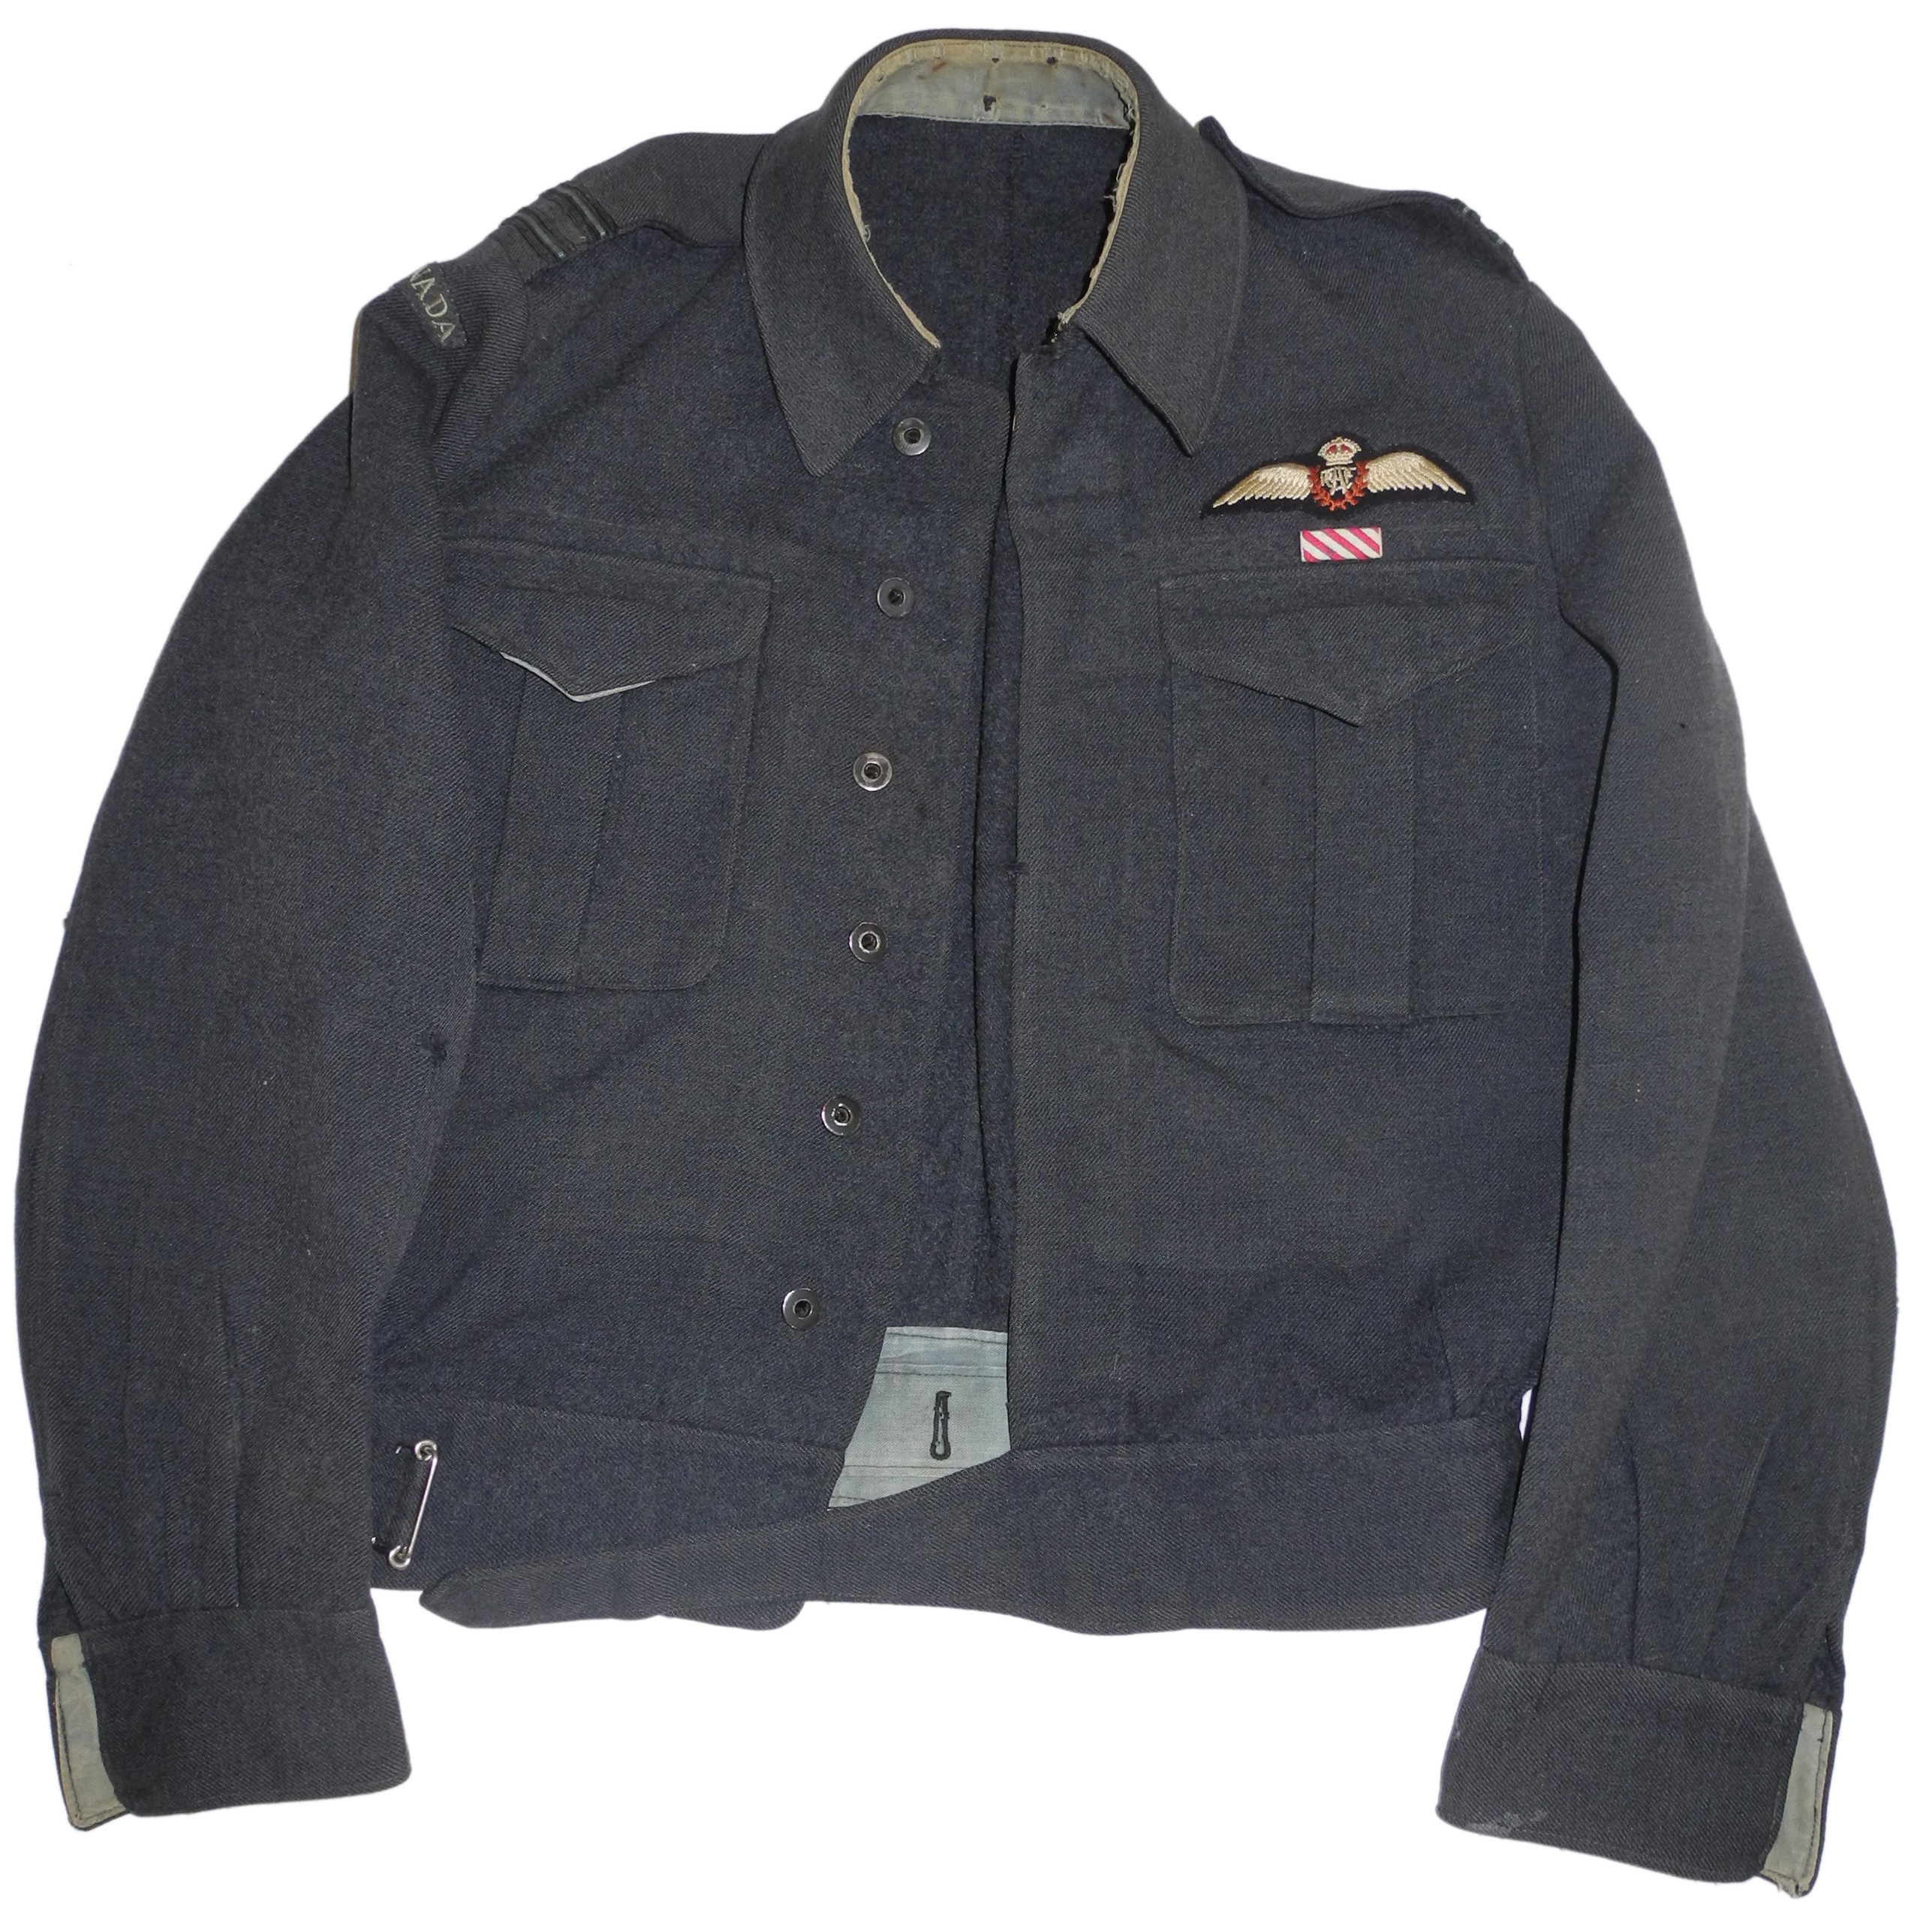 RCAF Aircrew Blouse to AFC winner